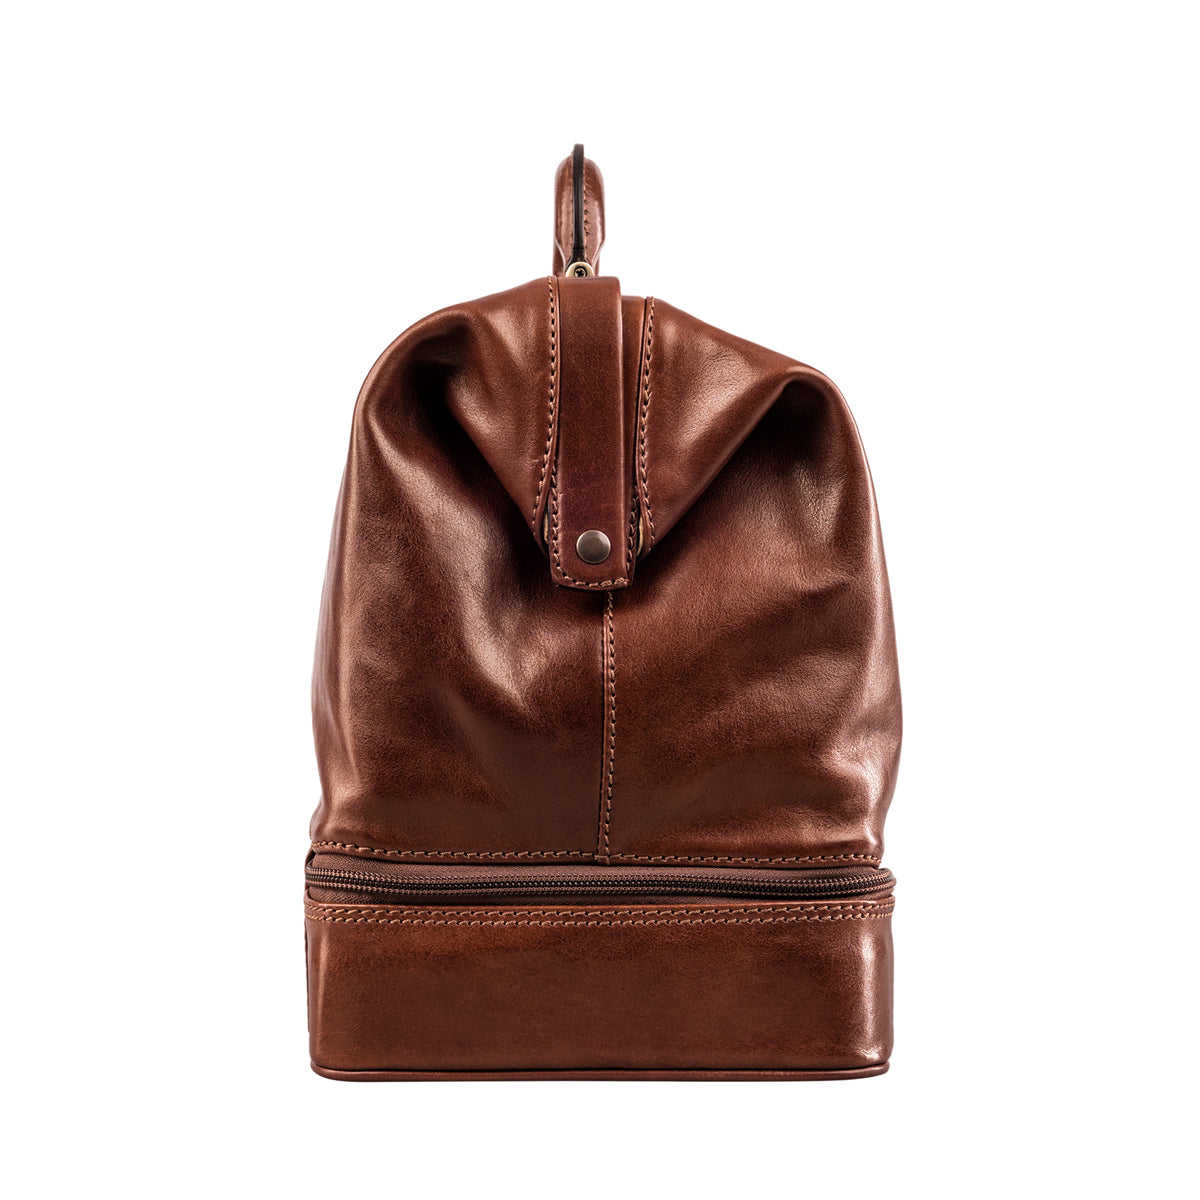 Image 3 of the Large ''Donnini' Chestnut Veg-Tanned Leather Doctor's Bag